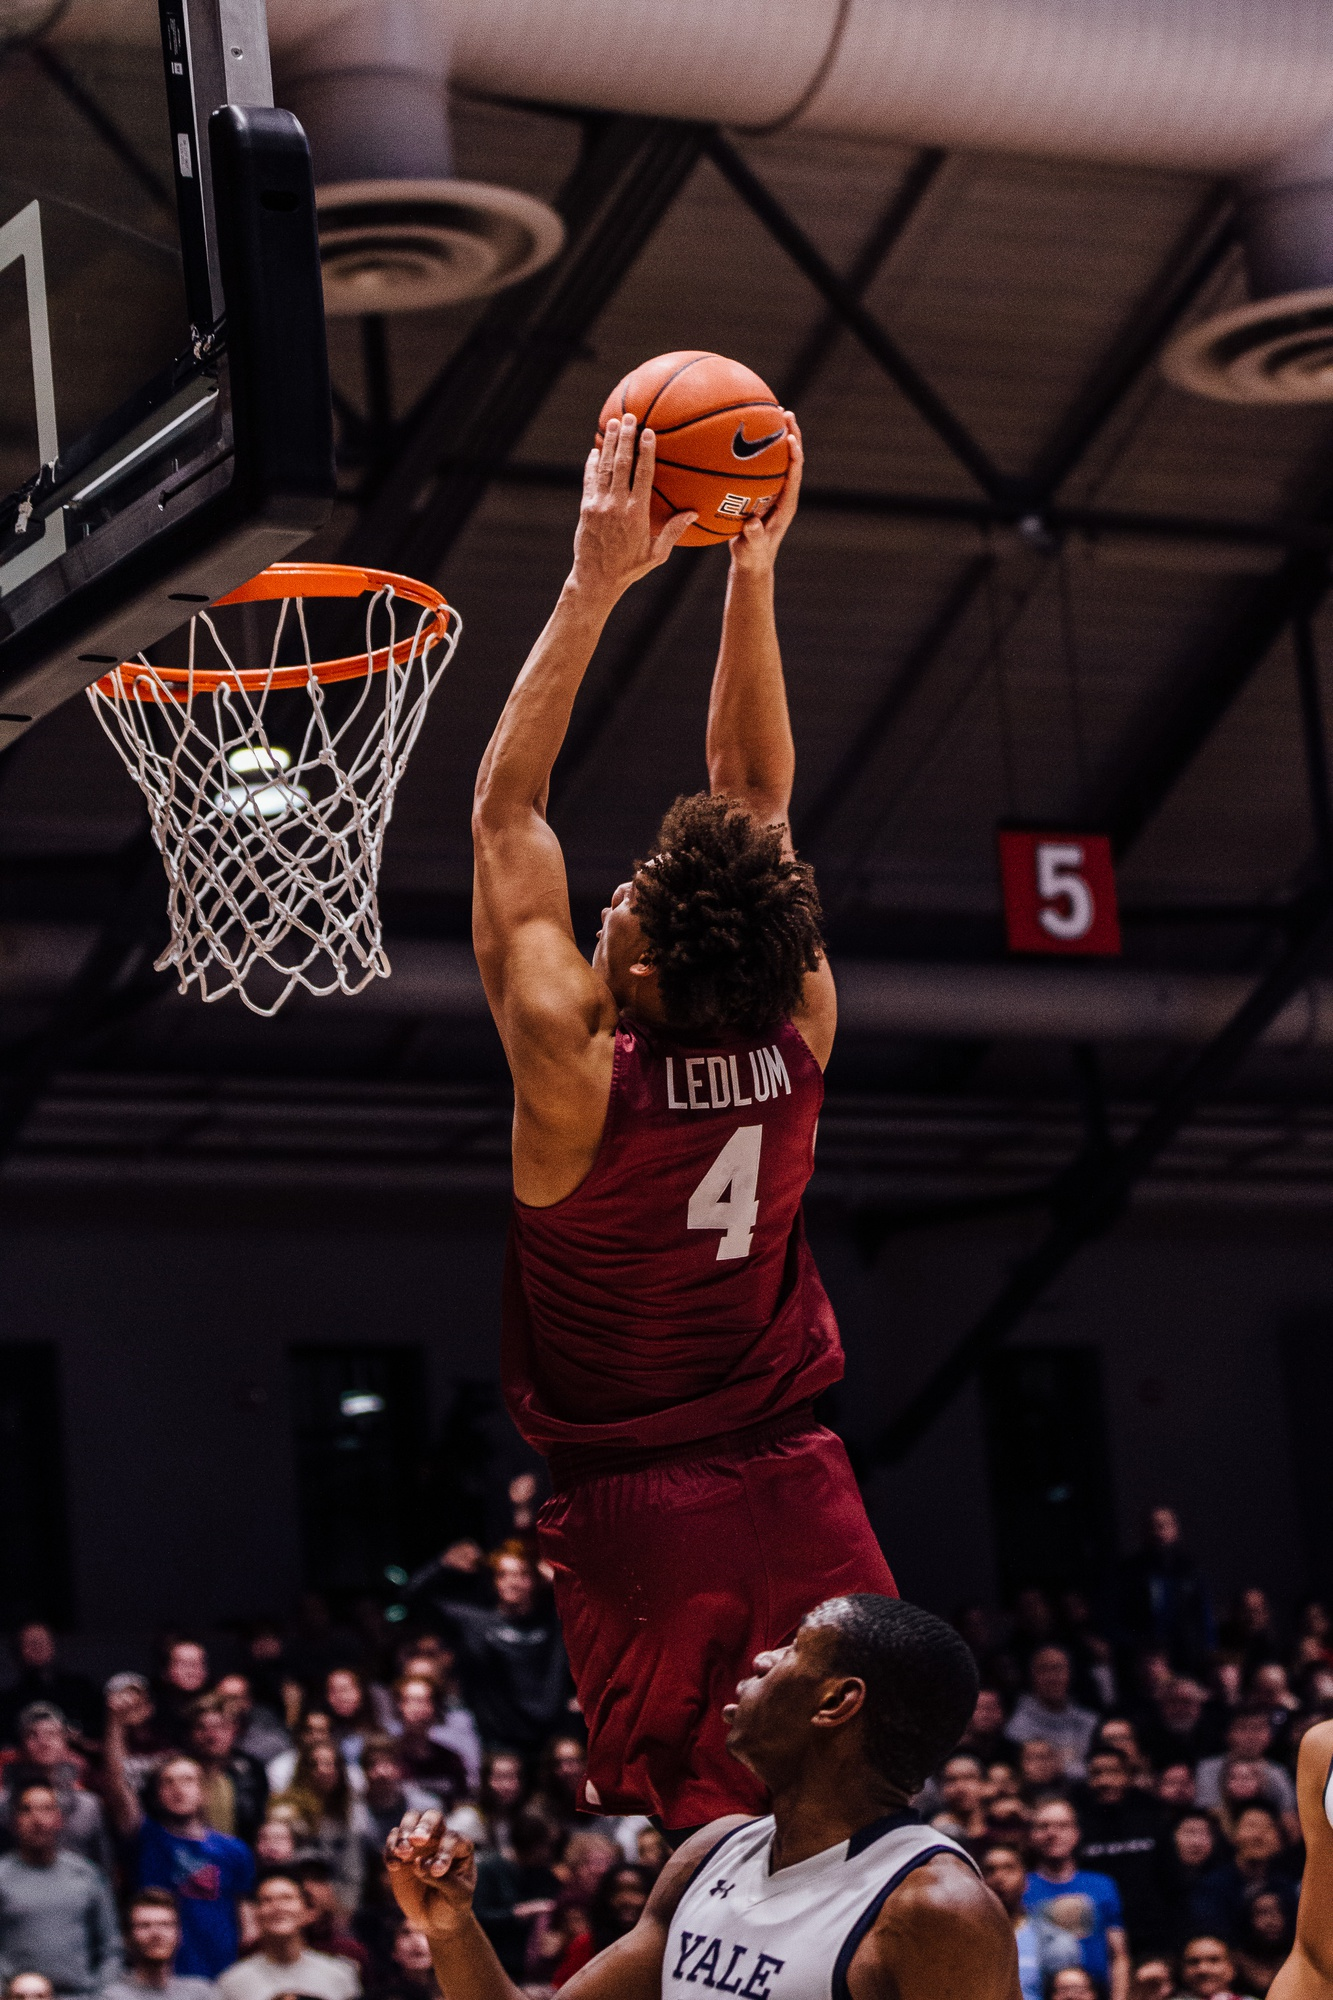 First-year Chris Ledlum electrified the crowd with a 360-degree dunk in Saturday night's win over Yale.